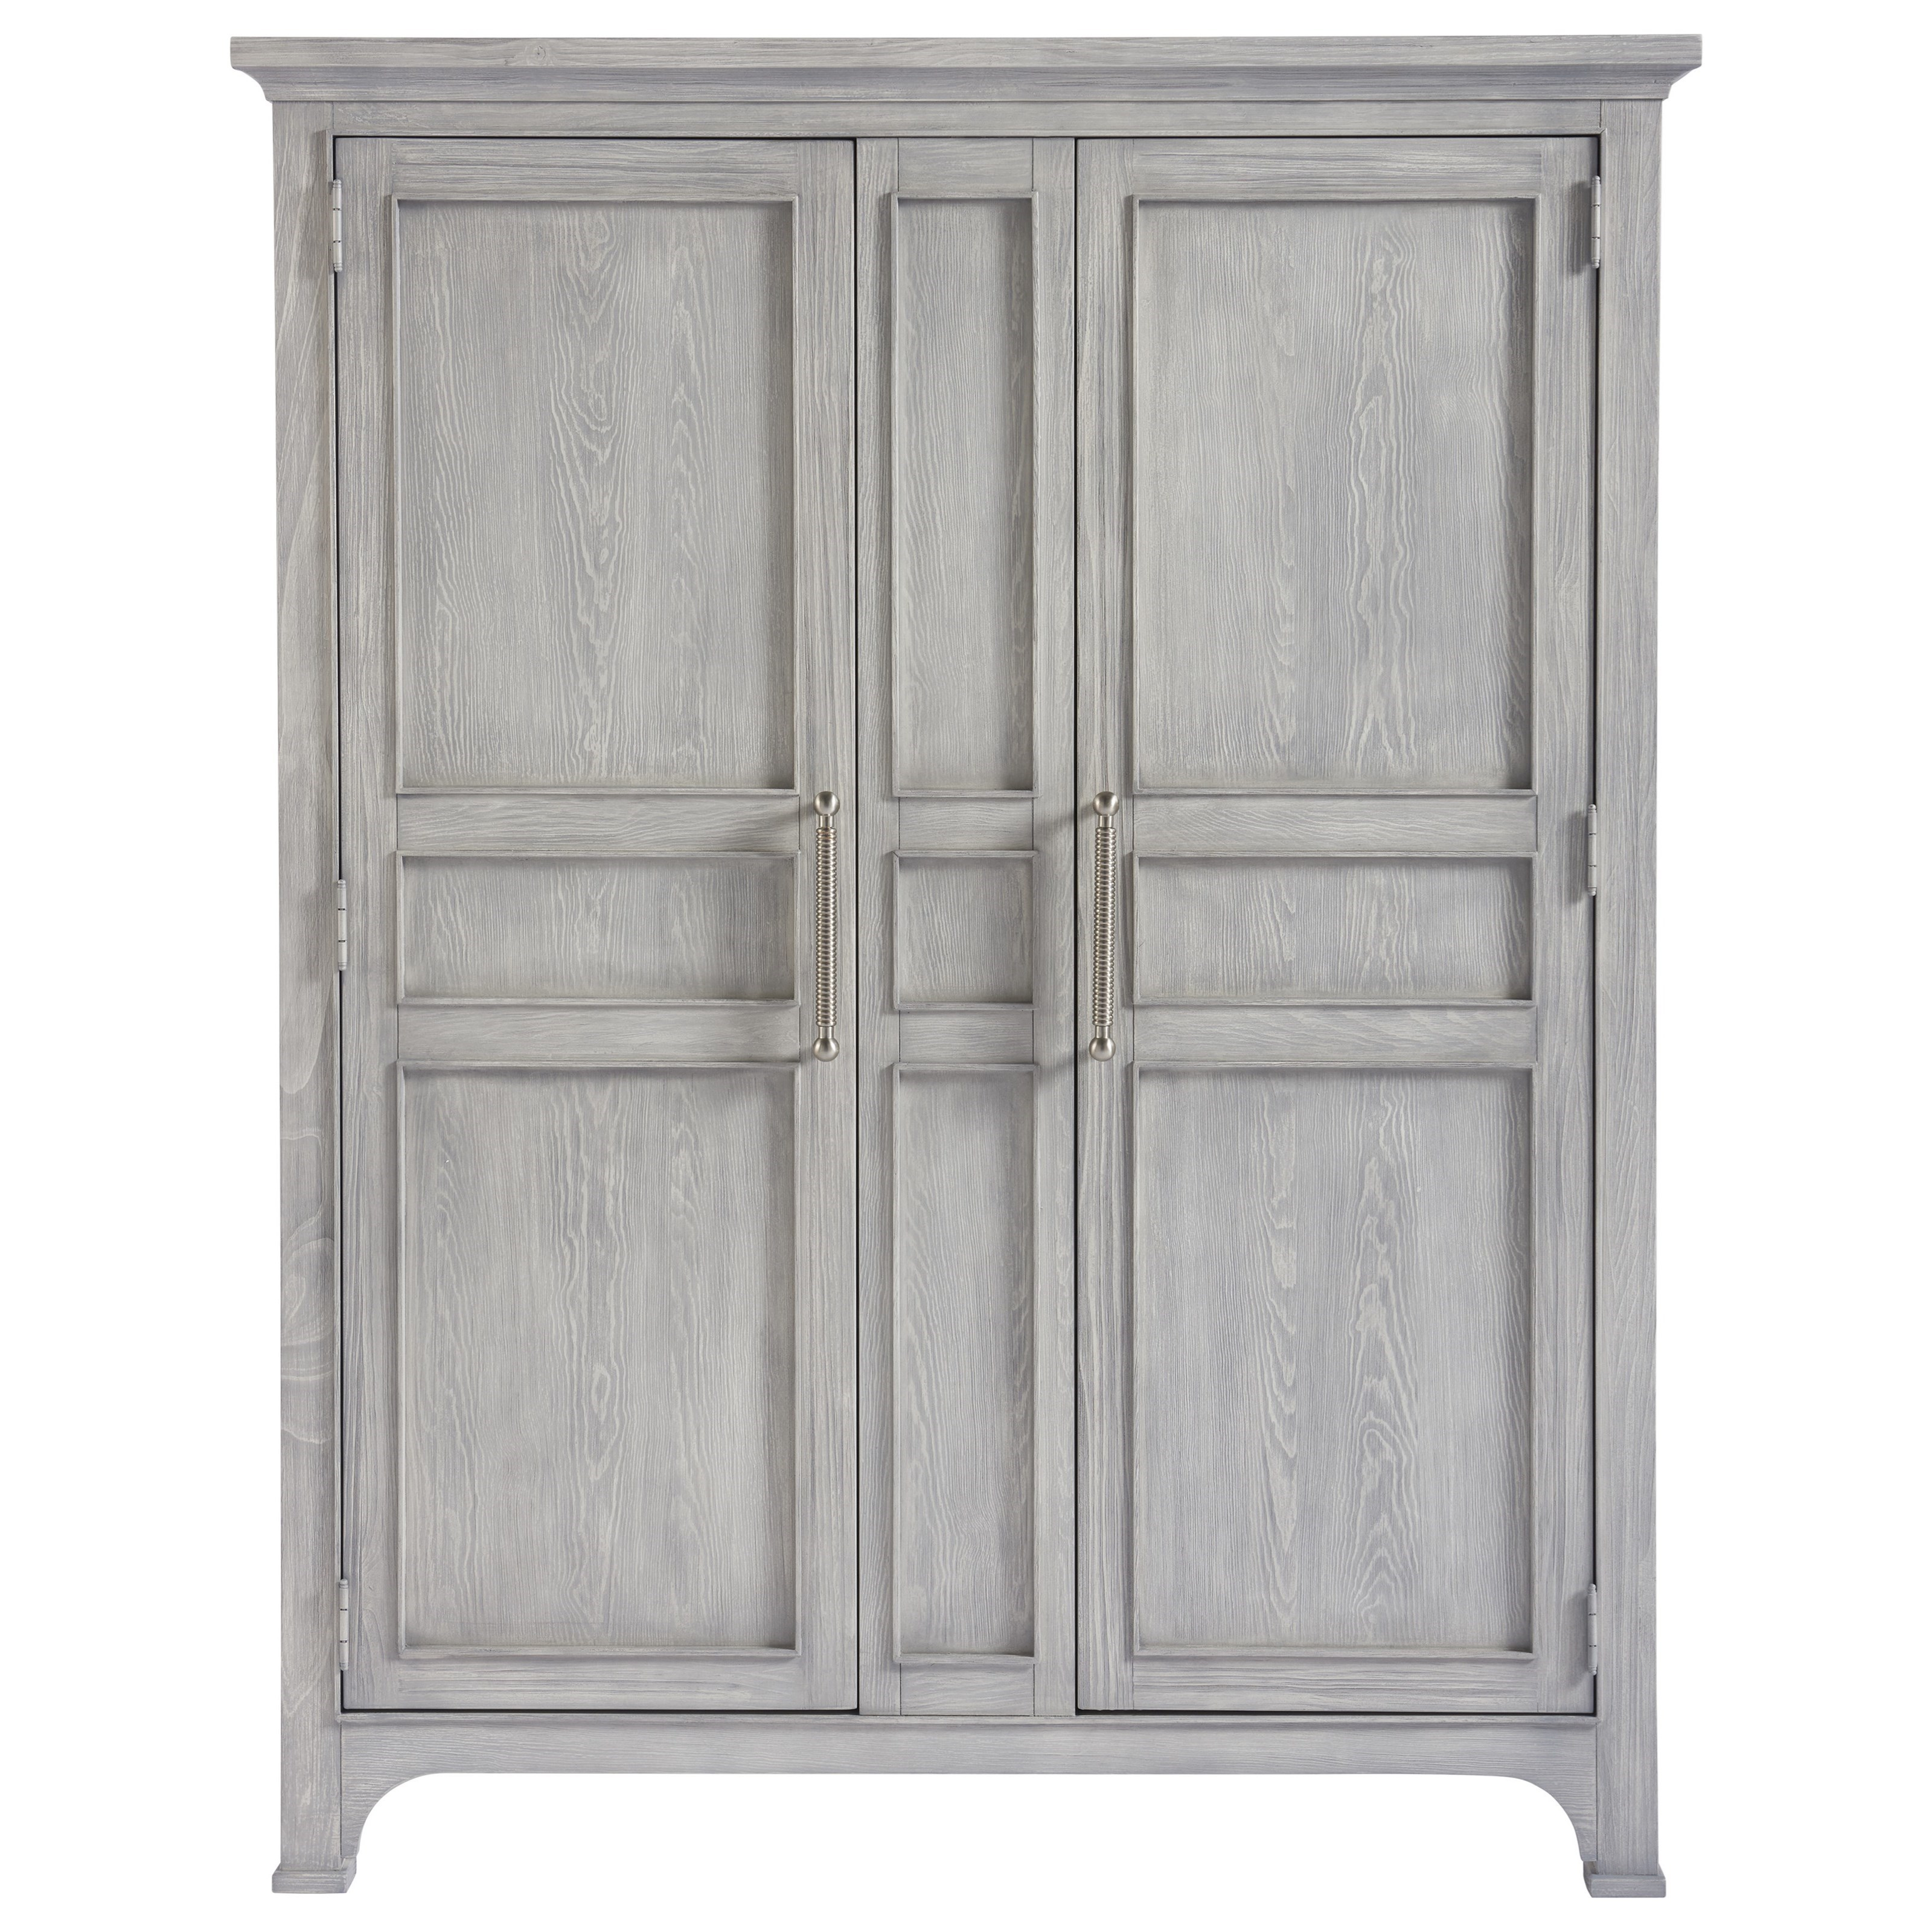 Coastal Living Home - Escape Cabinet by Universal at Baer's Furniture